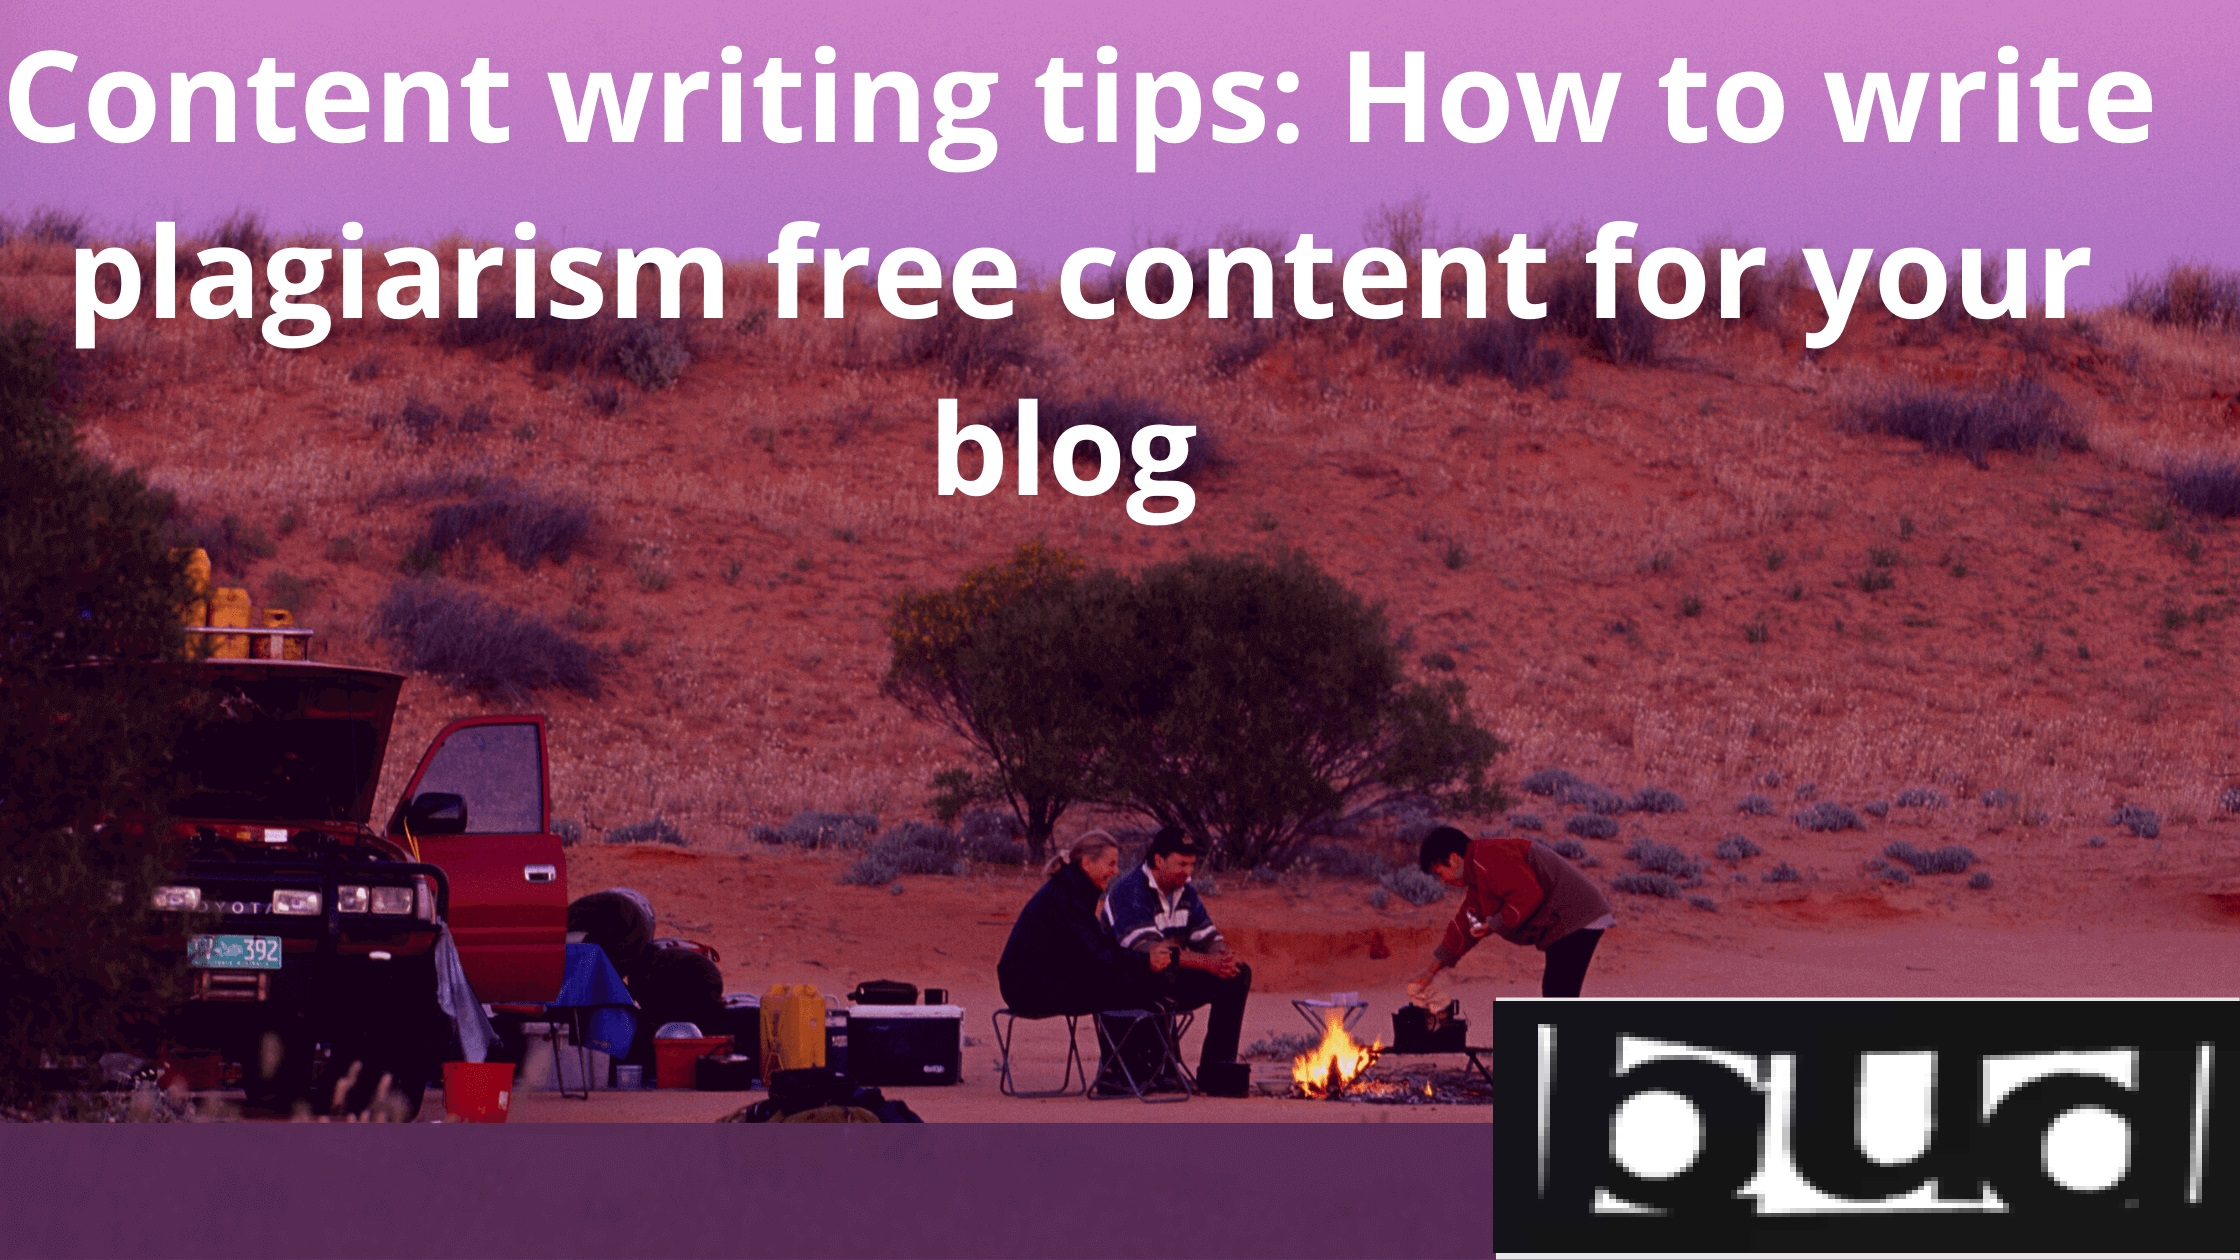 CONTENT WRITING TIPS: HOW TO WRITE PLAGIARISM FREE CONTENT FOR YOUR BLOG